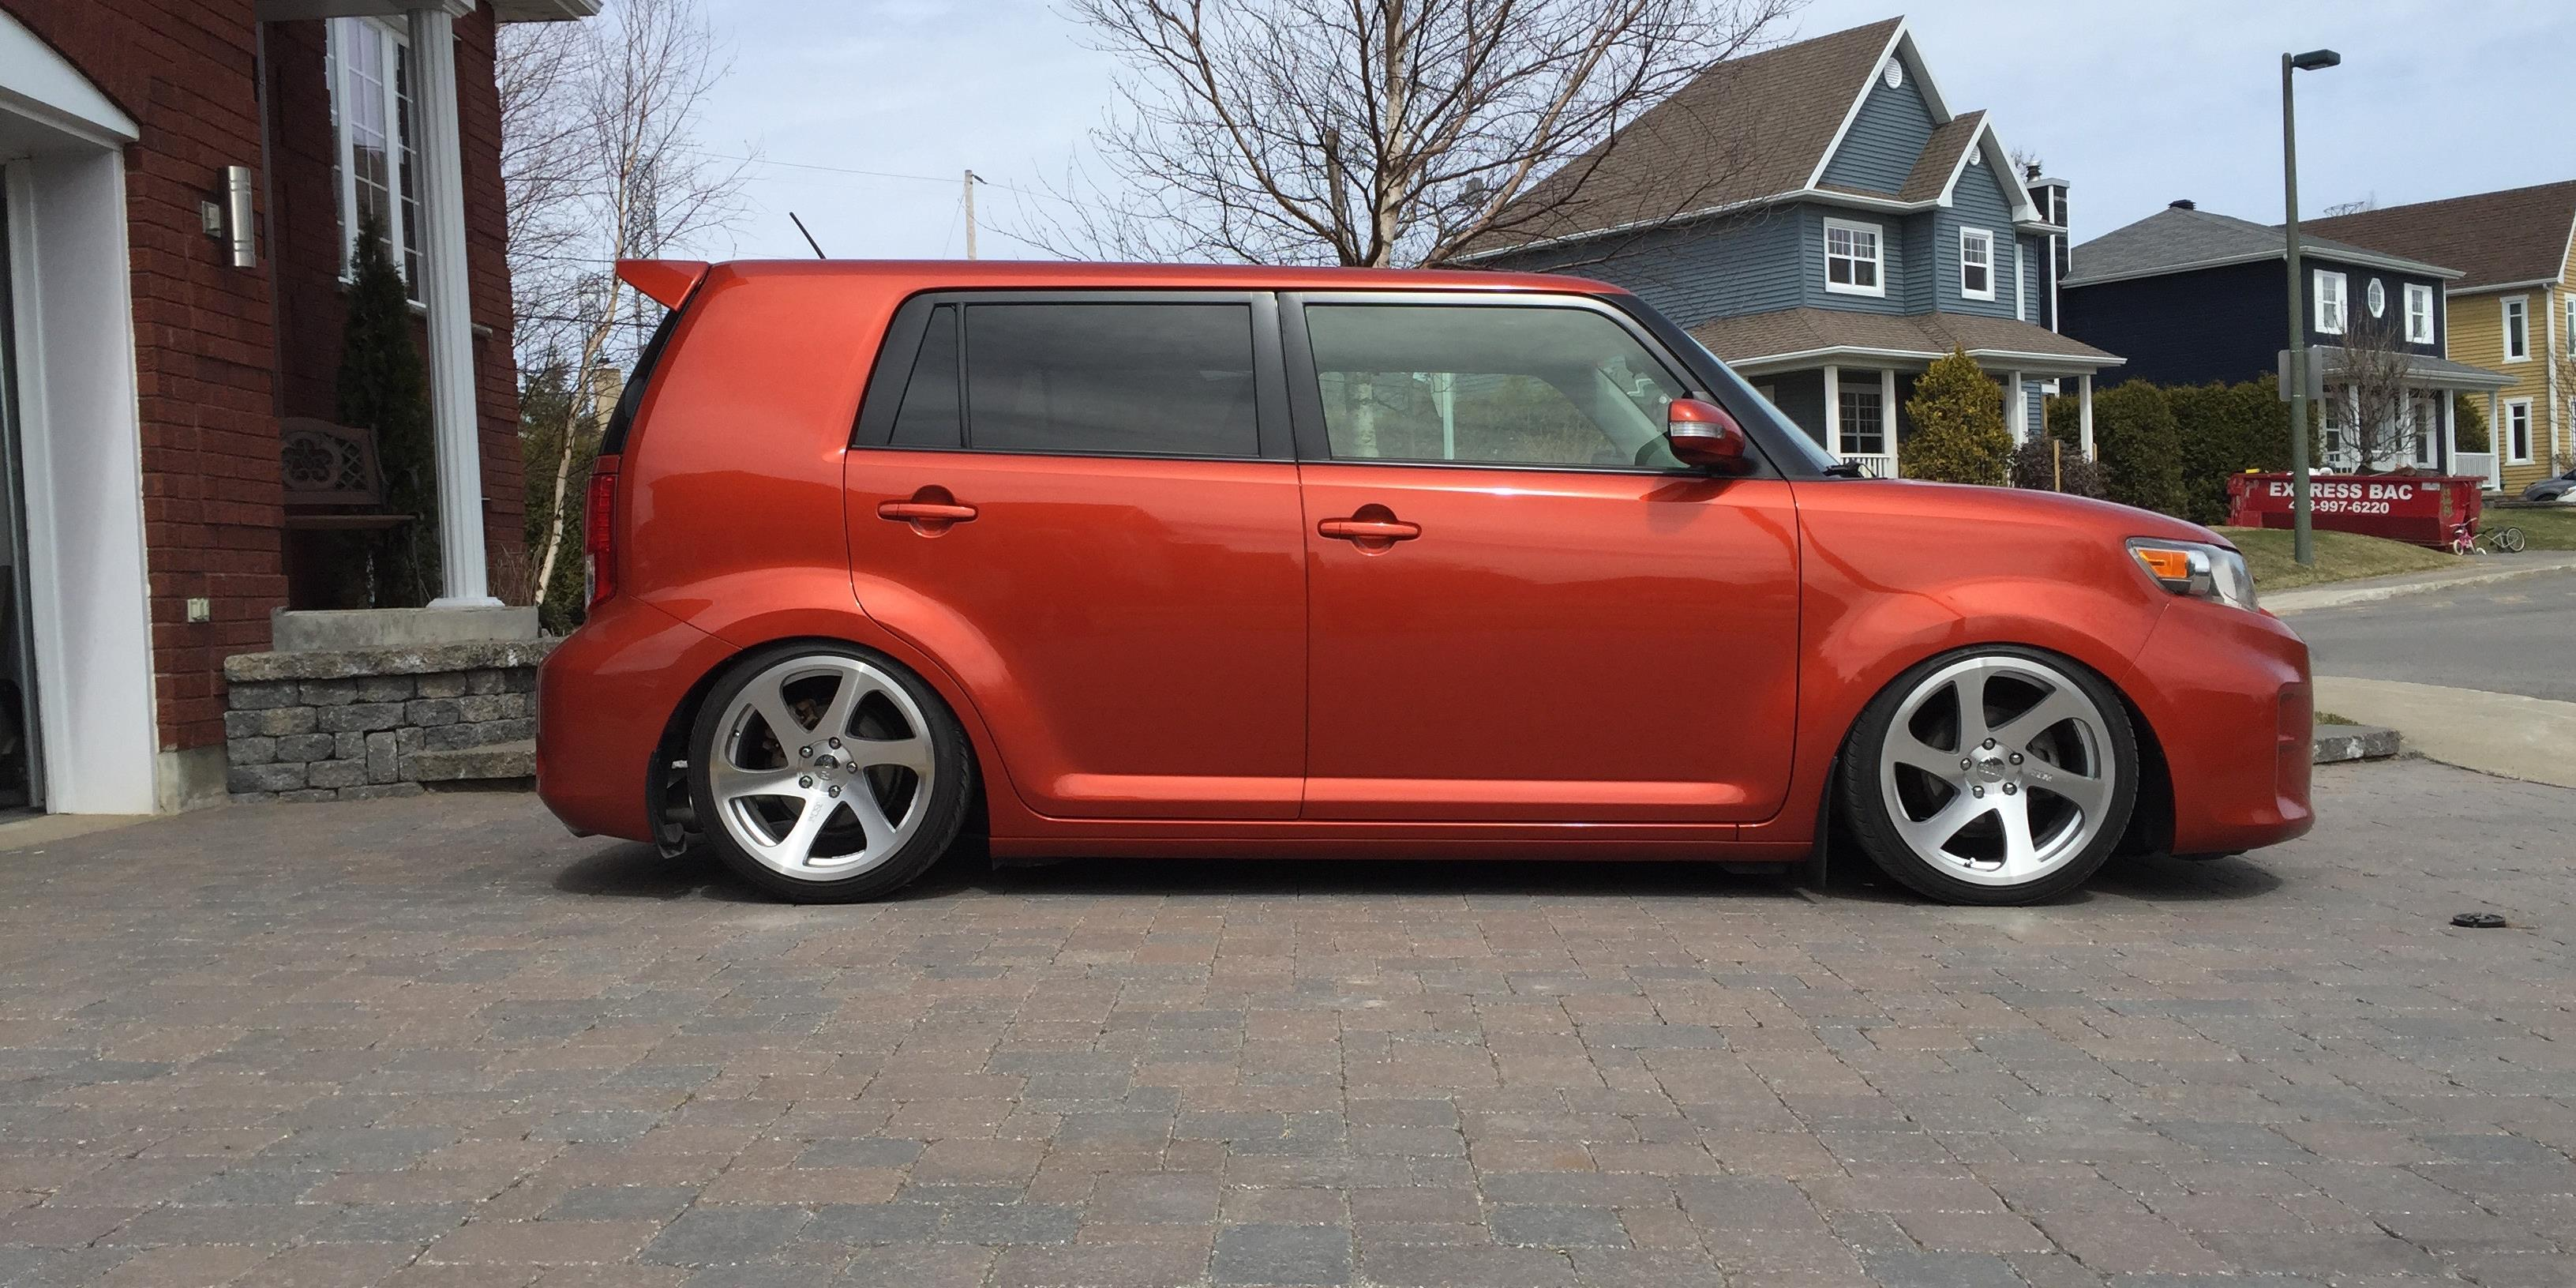 Hyundai Of Bedford >> raphroger 2012 Scion XB Specs, Photos, Modification Info at CarDomain